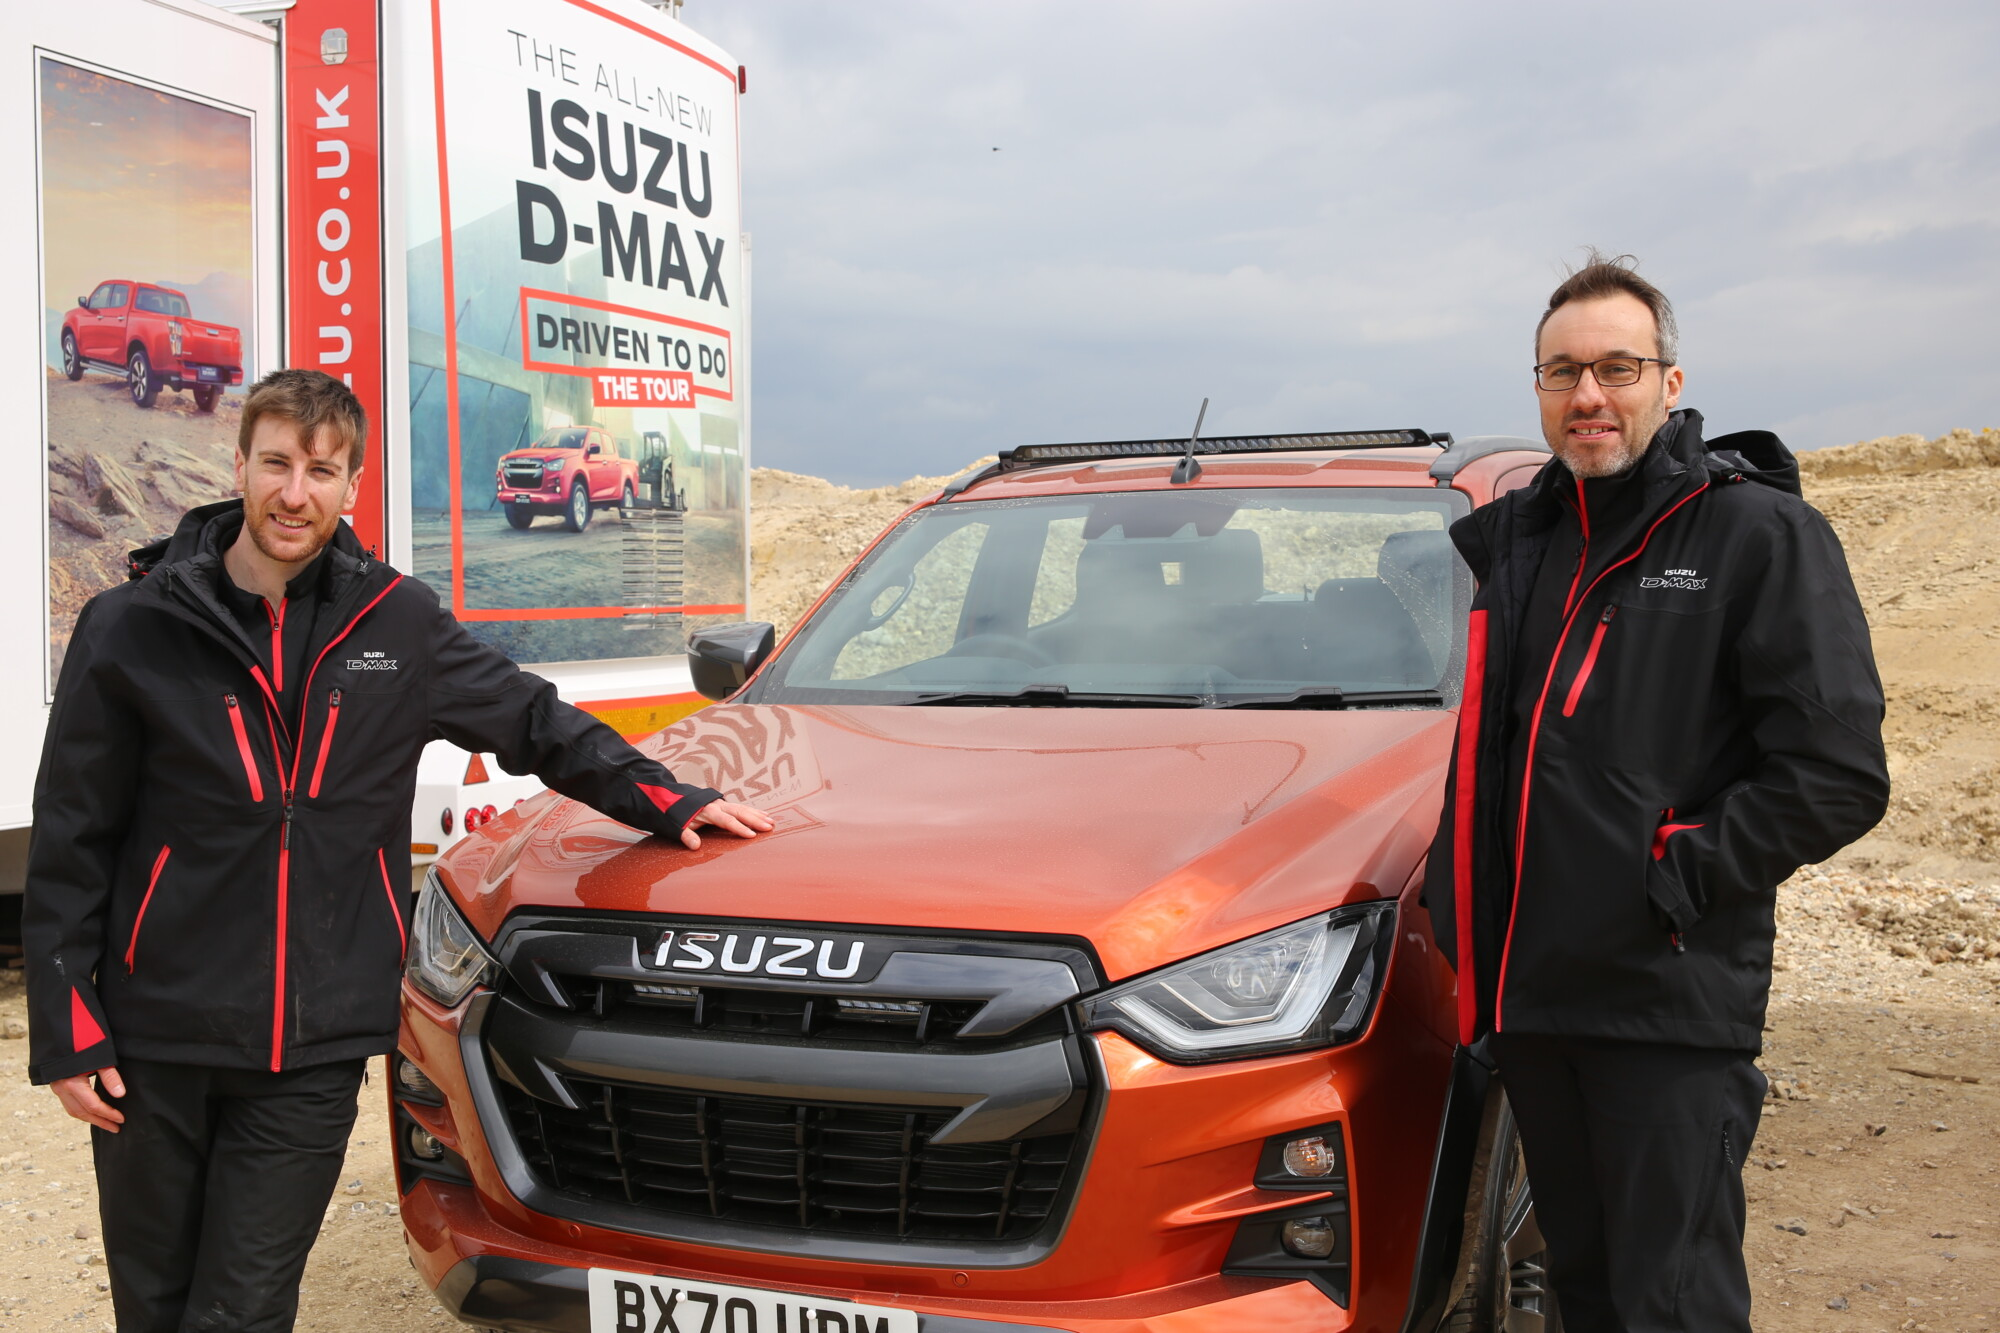 Isuzu UK product and PR manager Liam Campbell (left) with managing director William Brown at the UK press launch. William commented at the event that whereas 2019 D-Max sales totalled 4,770 units, this year's target is 5,000 and the target for 2025 is 10,000.